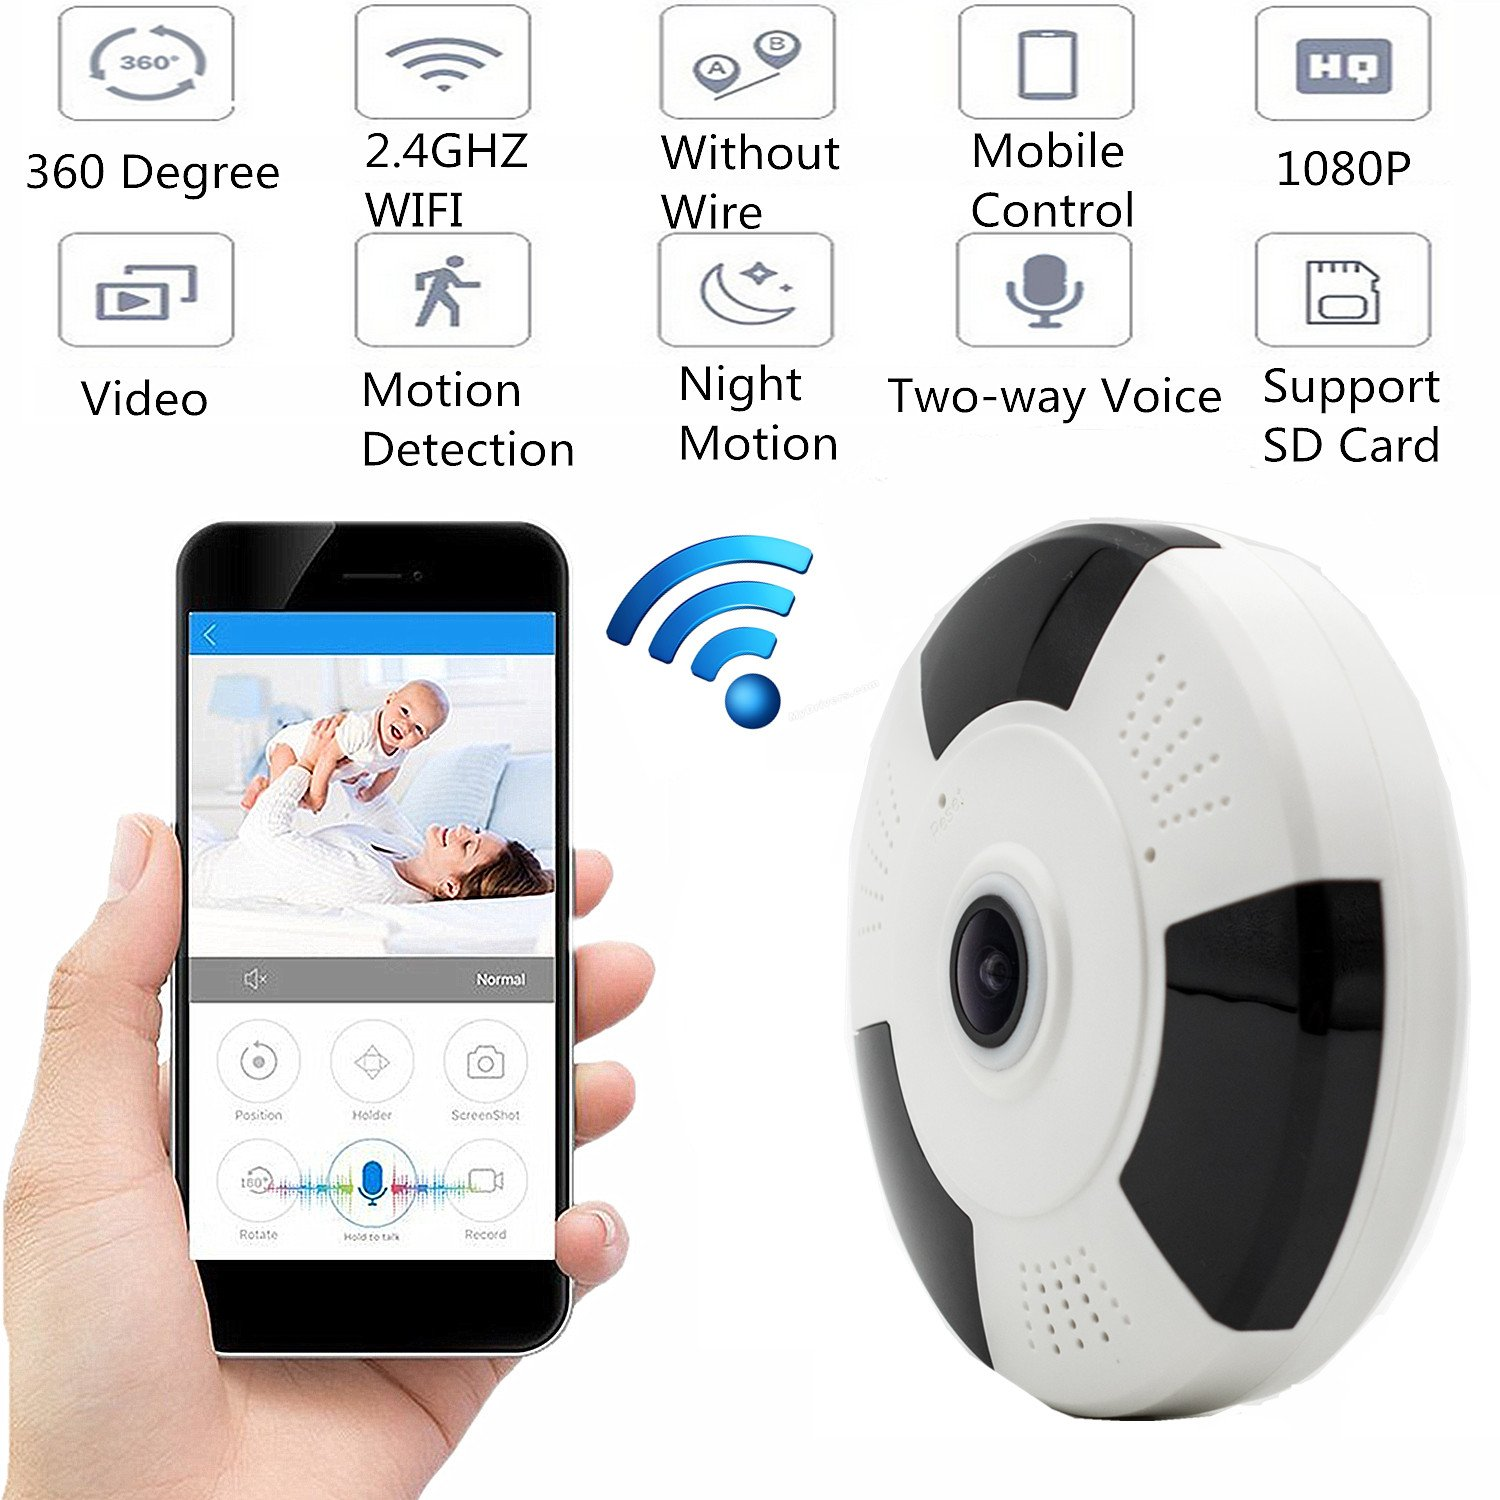 Reching Home Camera HD 1080P IP Camera Wireless WIFI Security Network Camera,360° Security Monitor System with Nightvision/2 Way Audio/Motion Detection Smart View - All vision